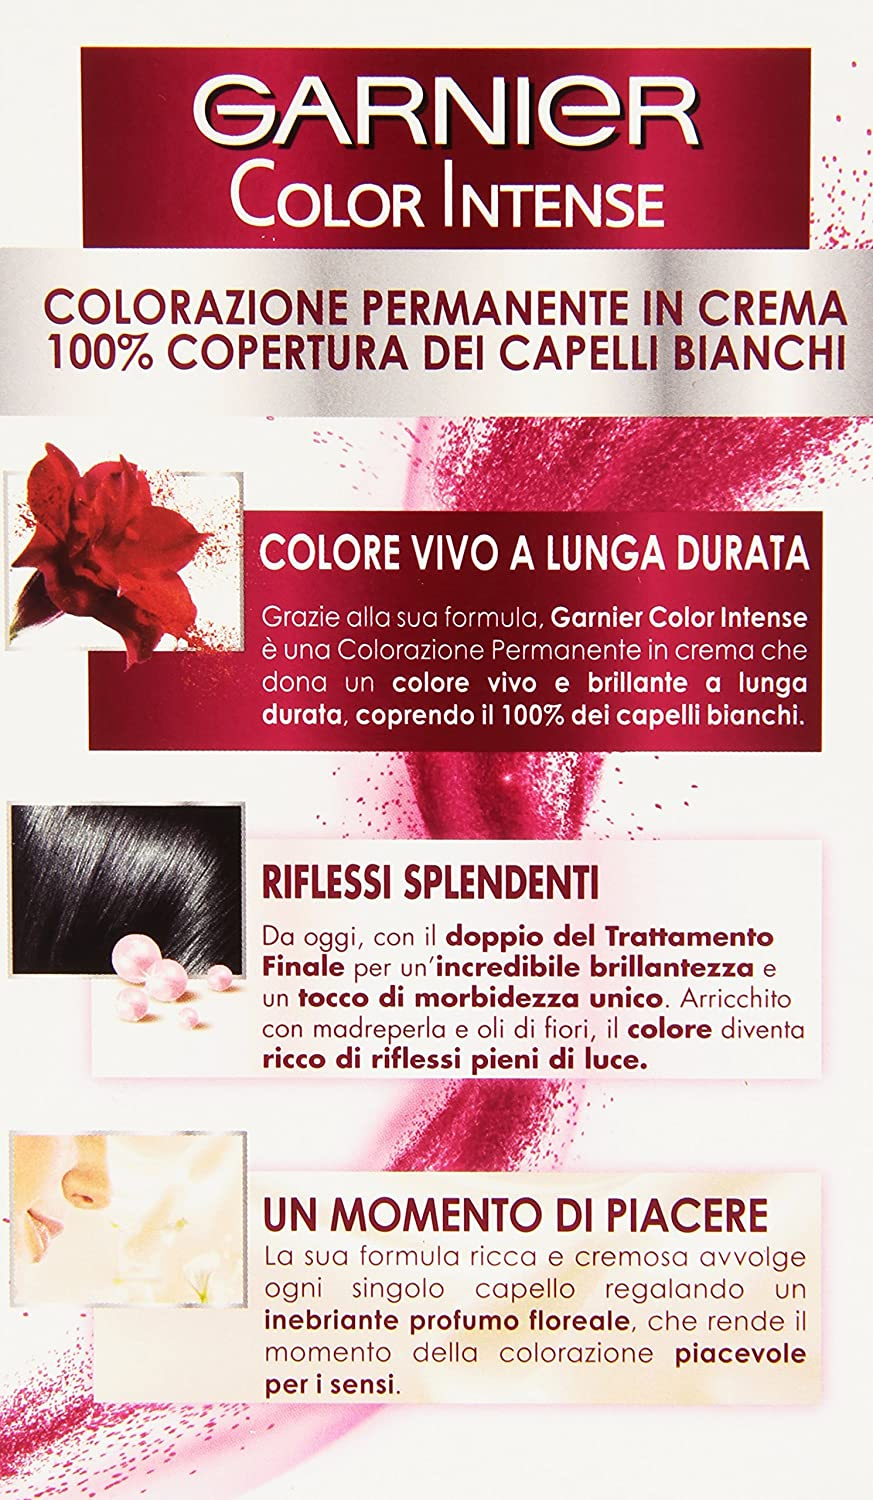 Garnier Garnier Color Intense Colorazione Permanente in Crema 3c0d8db27f36